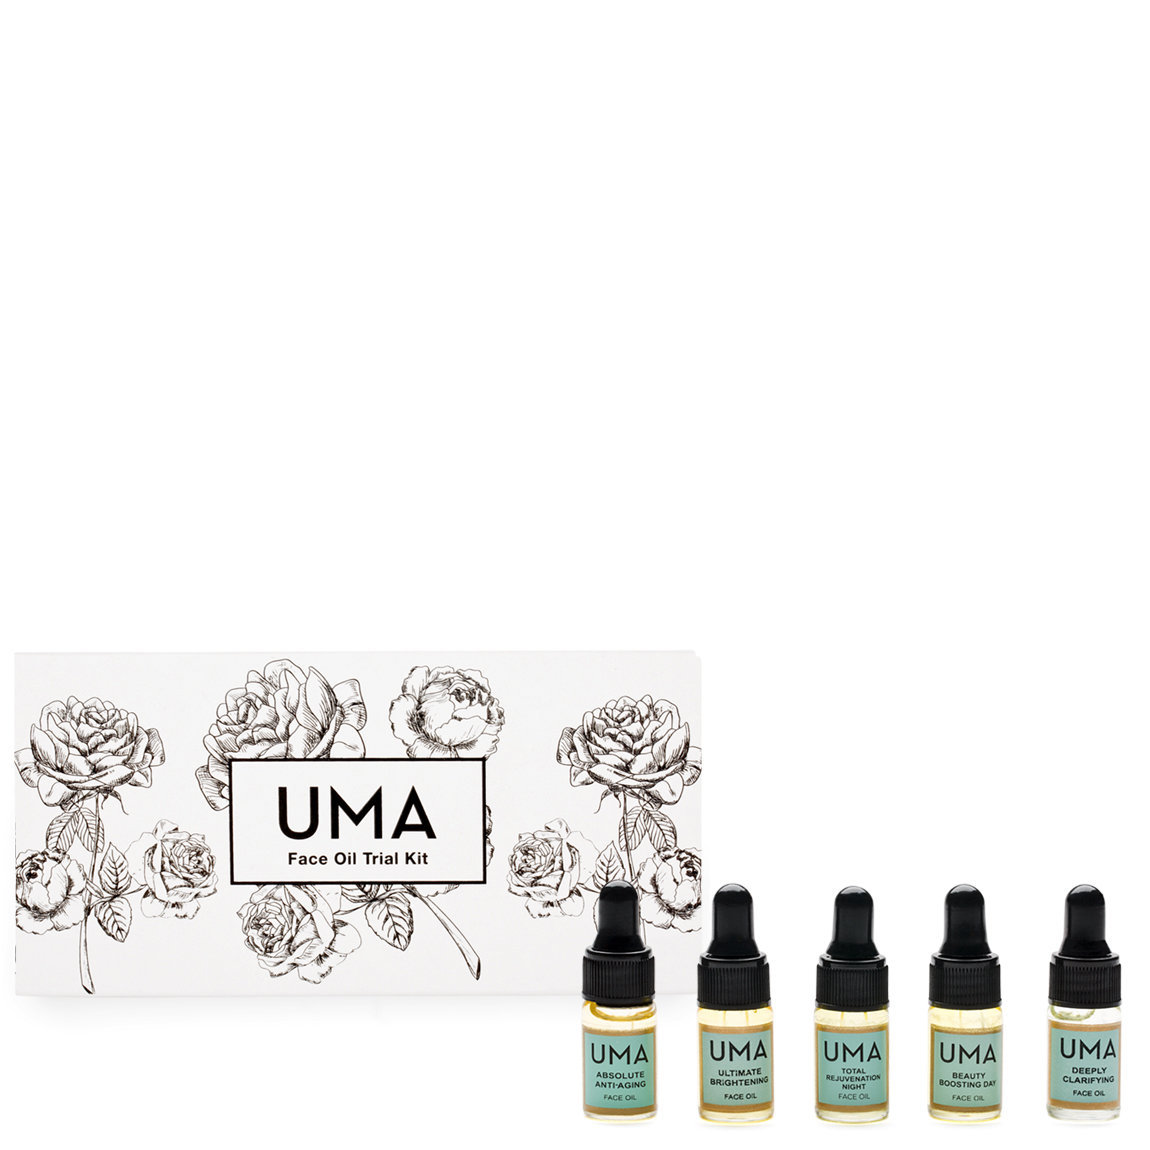 Uma Face Oil Trial Kit product swatch.